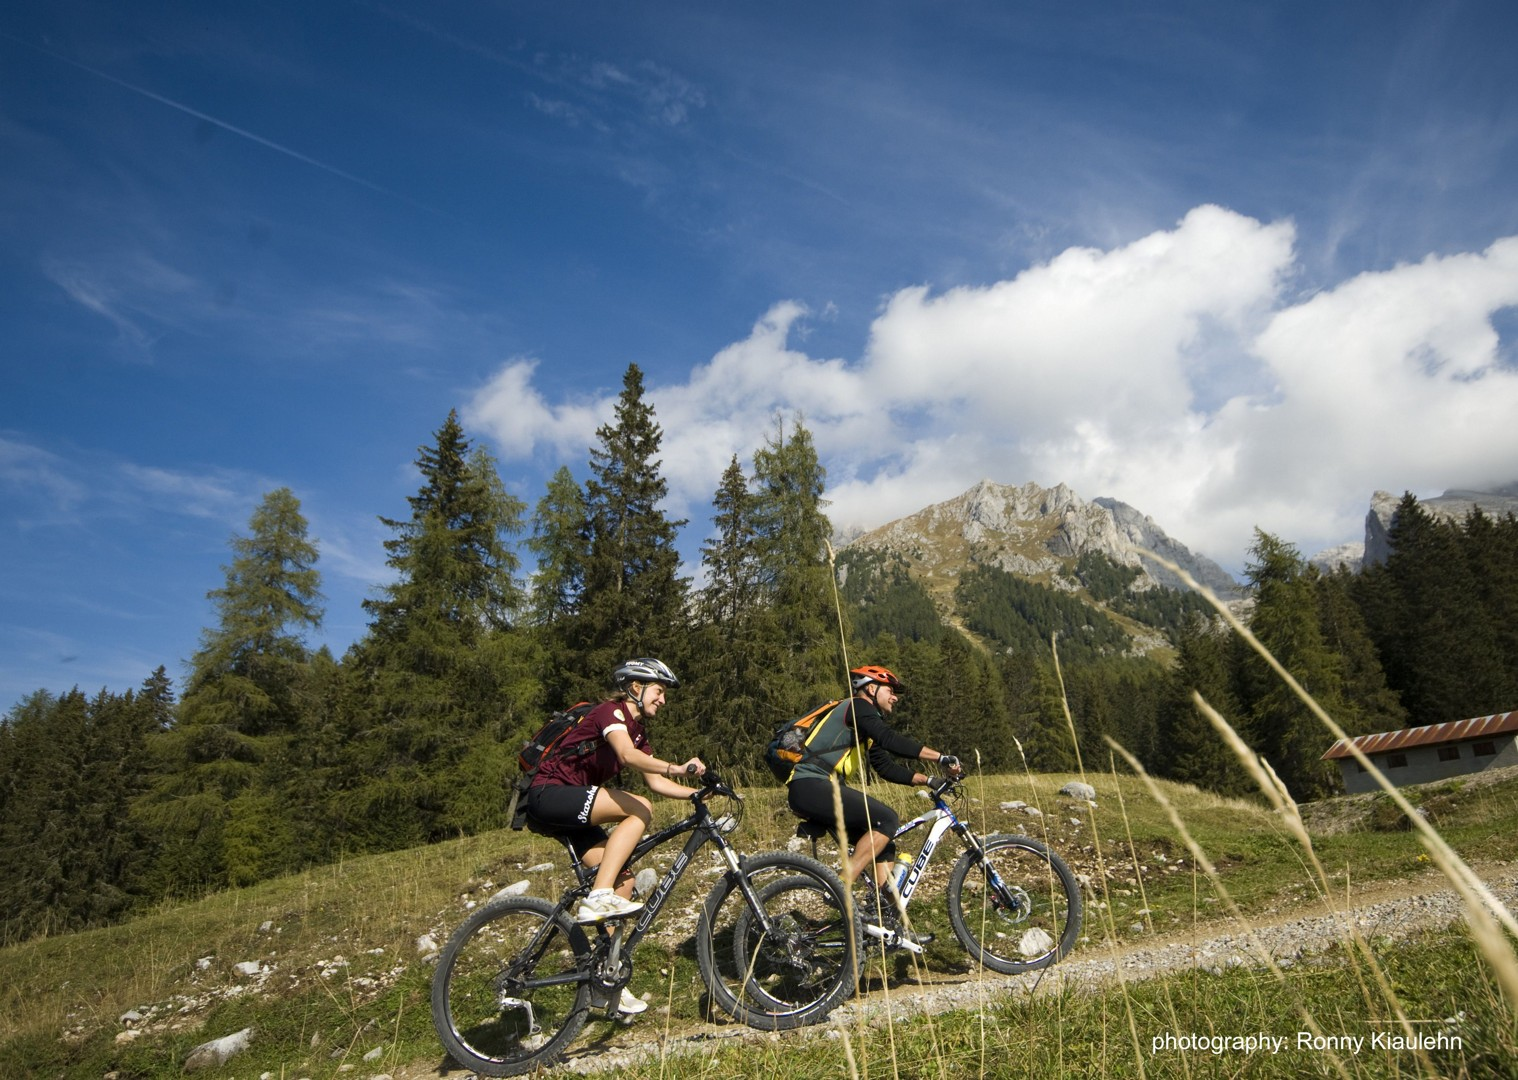 dolomites4.jpg - Italy - Dolomites of Brenta - Guided Mountain Bike Holiday - Italia Mountain Biking